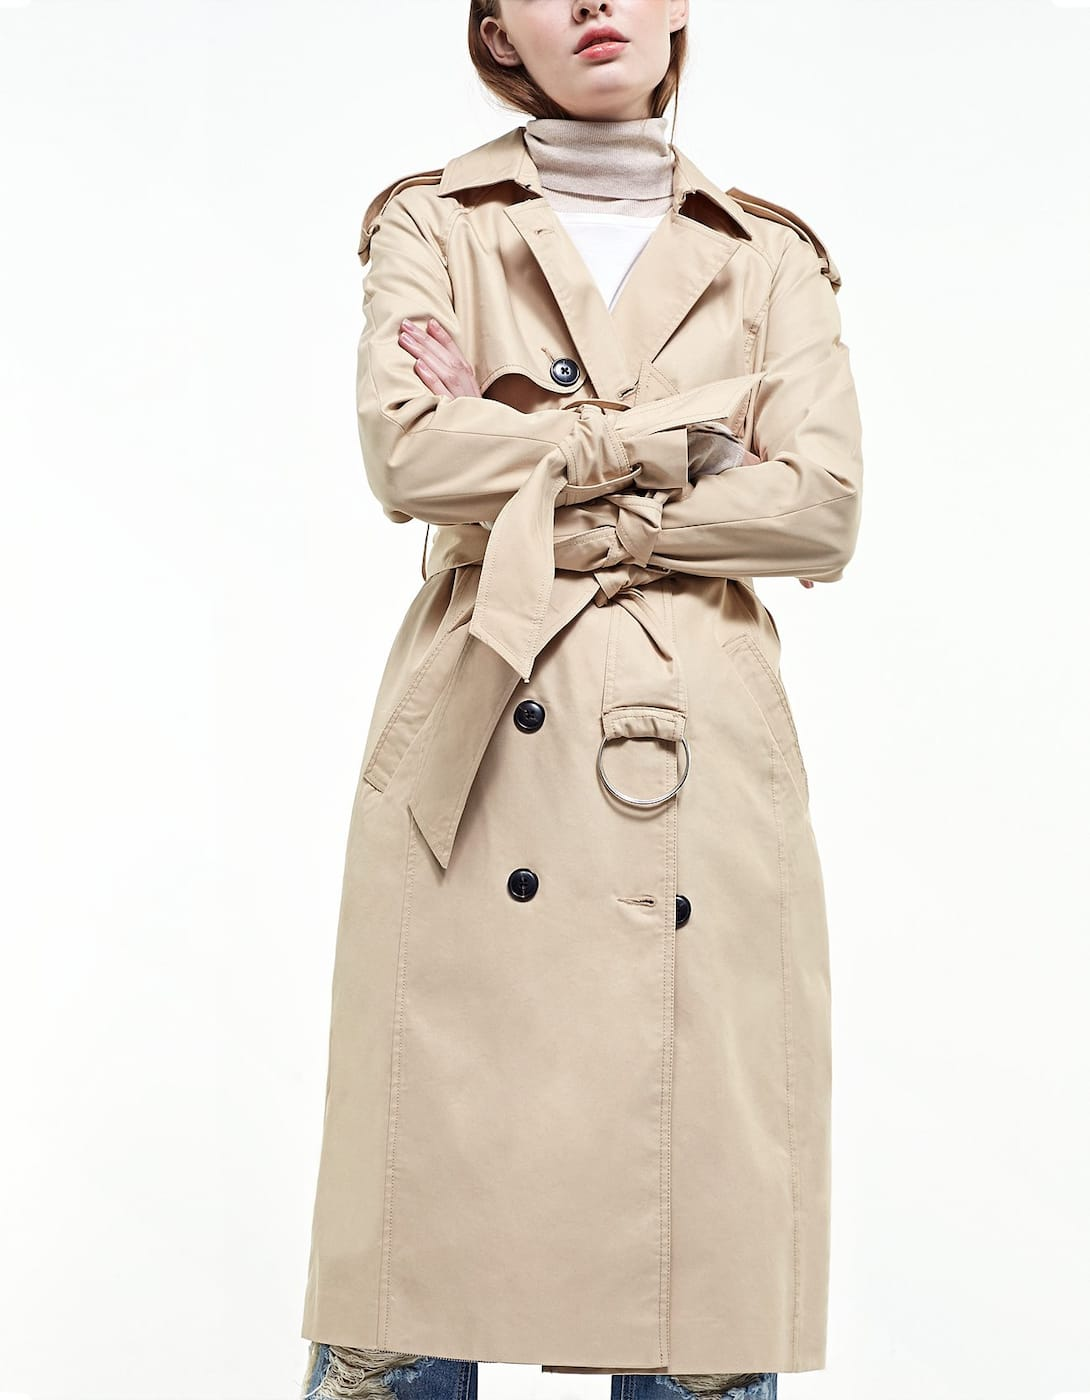 Trench-coat long nœuds manches - Vestes | Stradivarius France